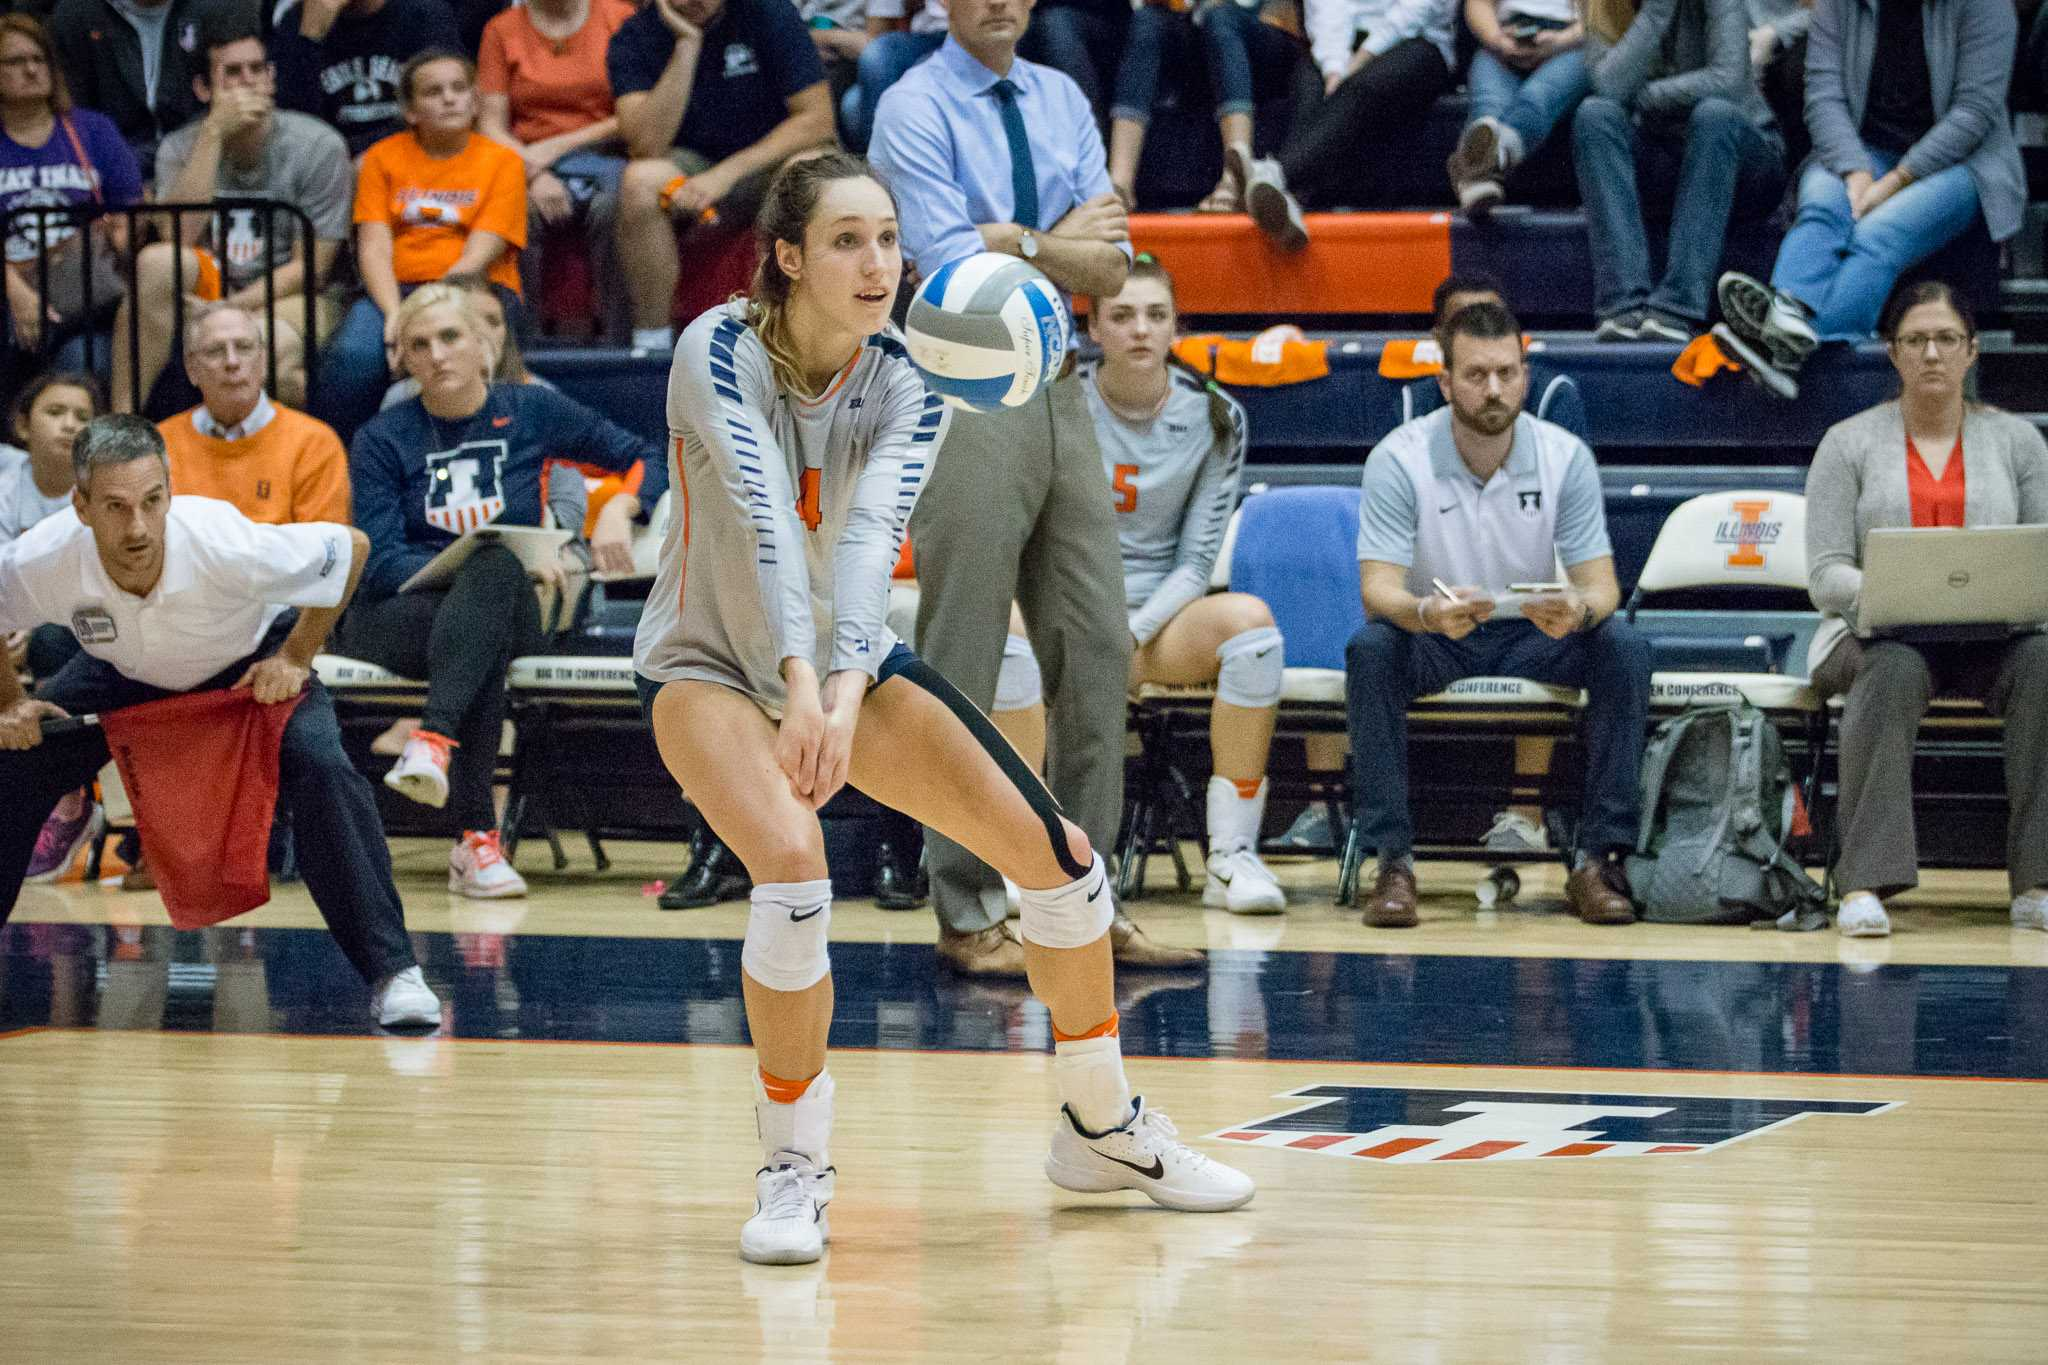 Illinois' Michelle Strizak passes the ball during the match against Northwestern at Huff Hall on Saturday, October 15. The Illini won 3-0.